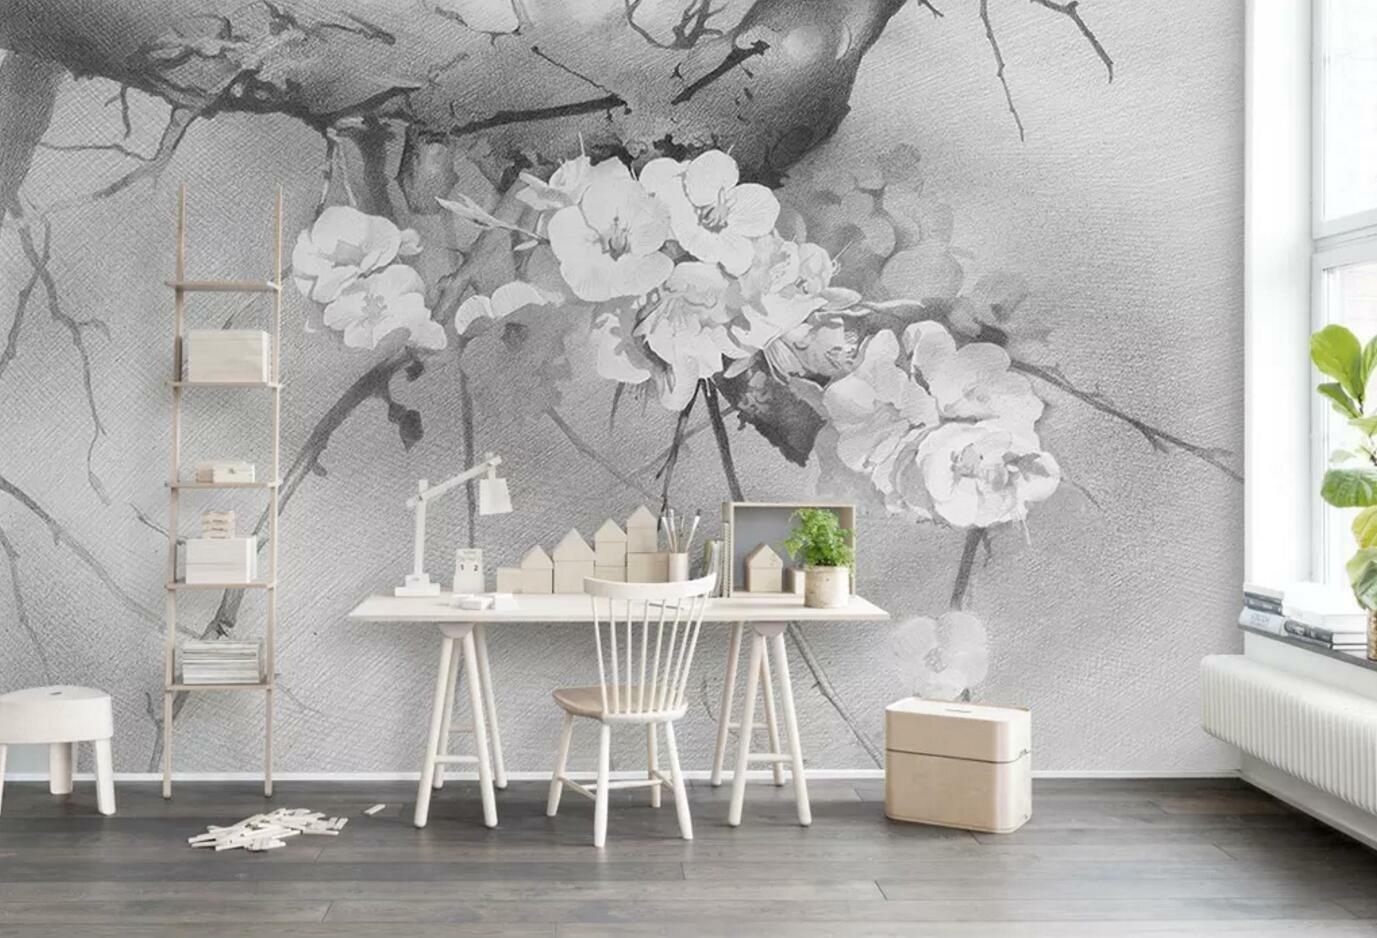 3D Flower Tree 8522 Wall Paper Exclusive MXY Wallpaper Mural Decal Indoor Wall